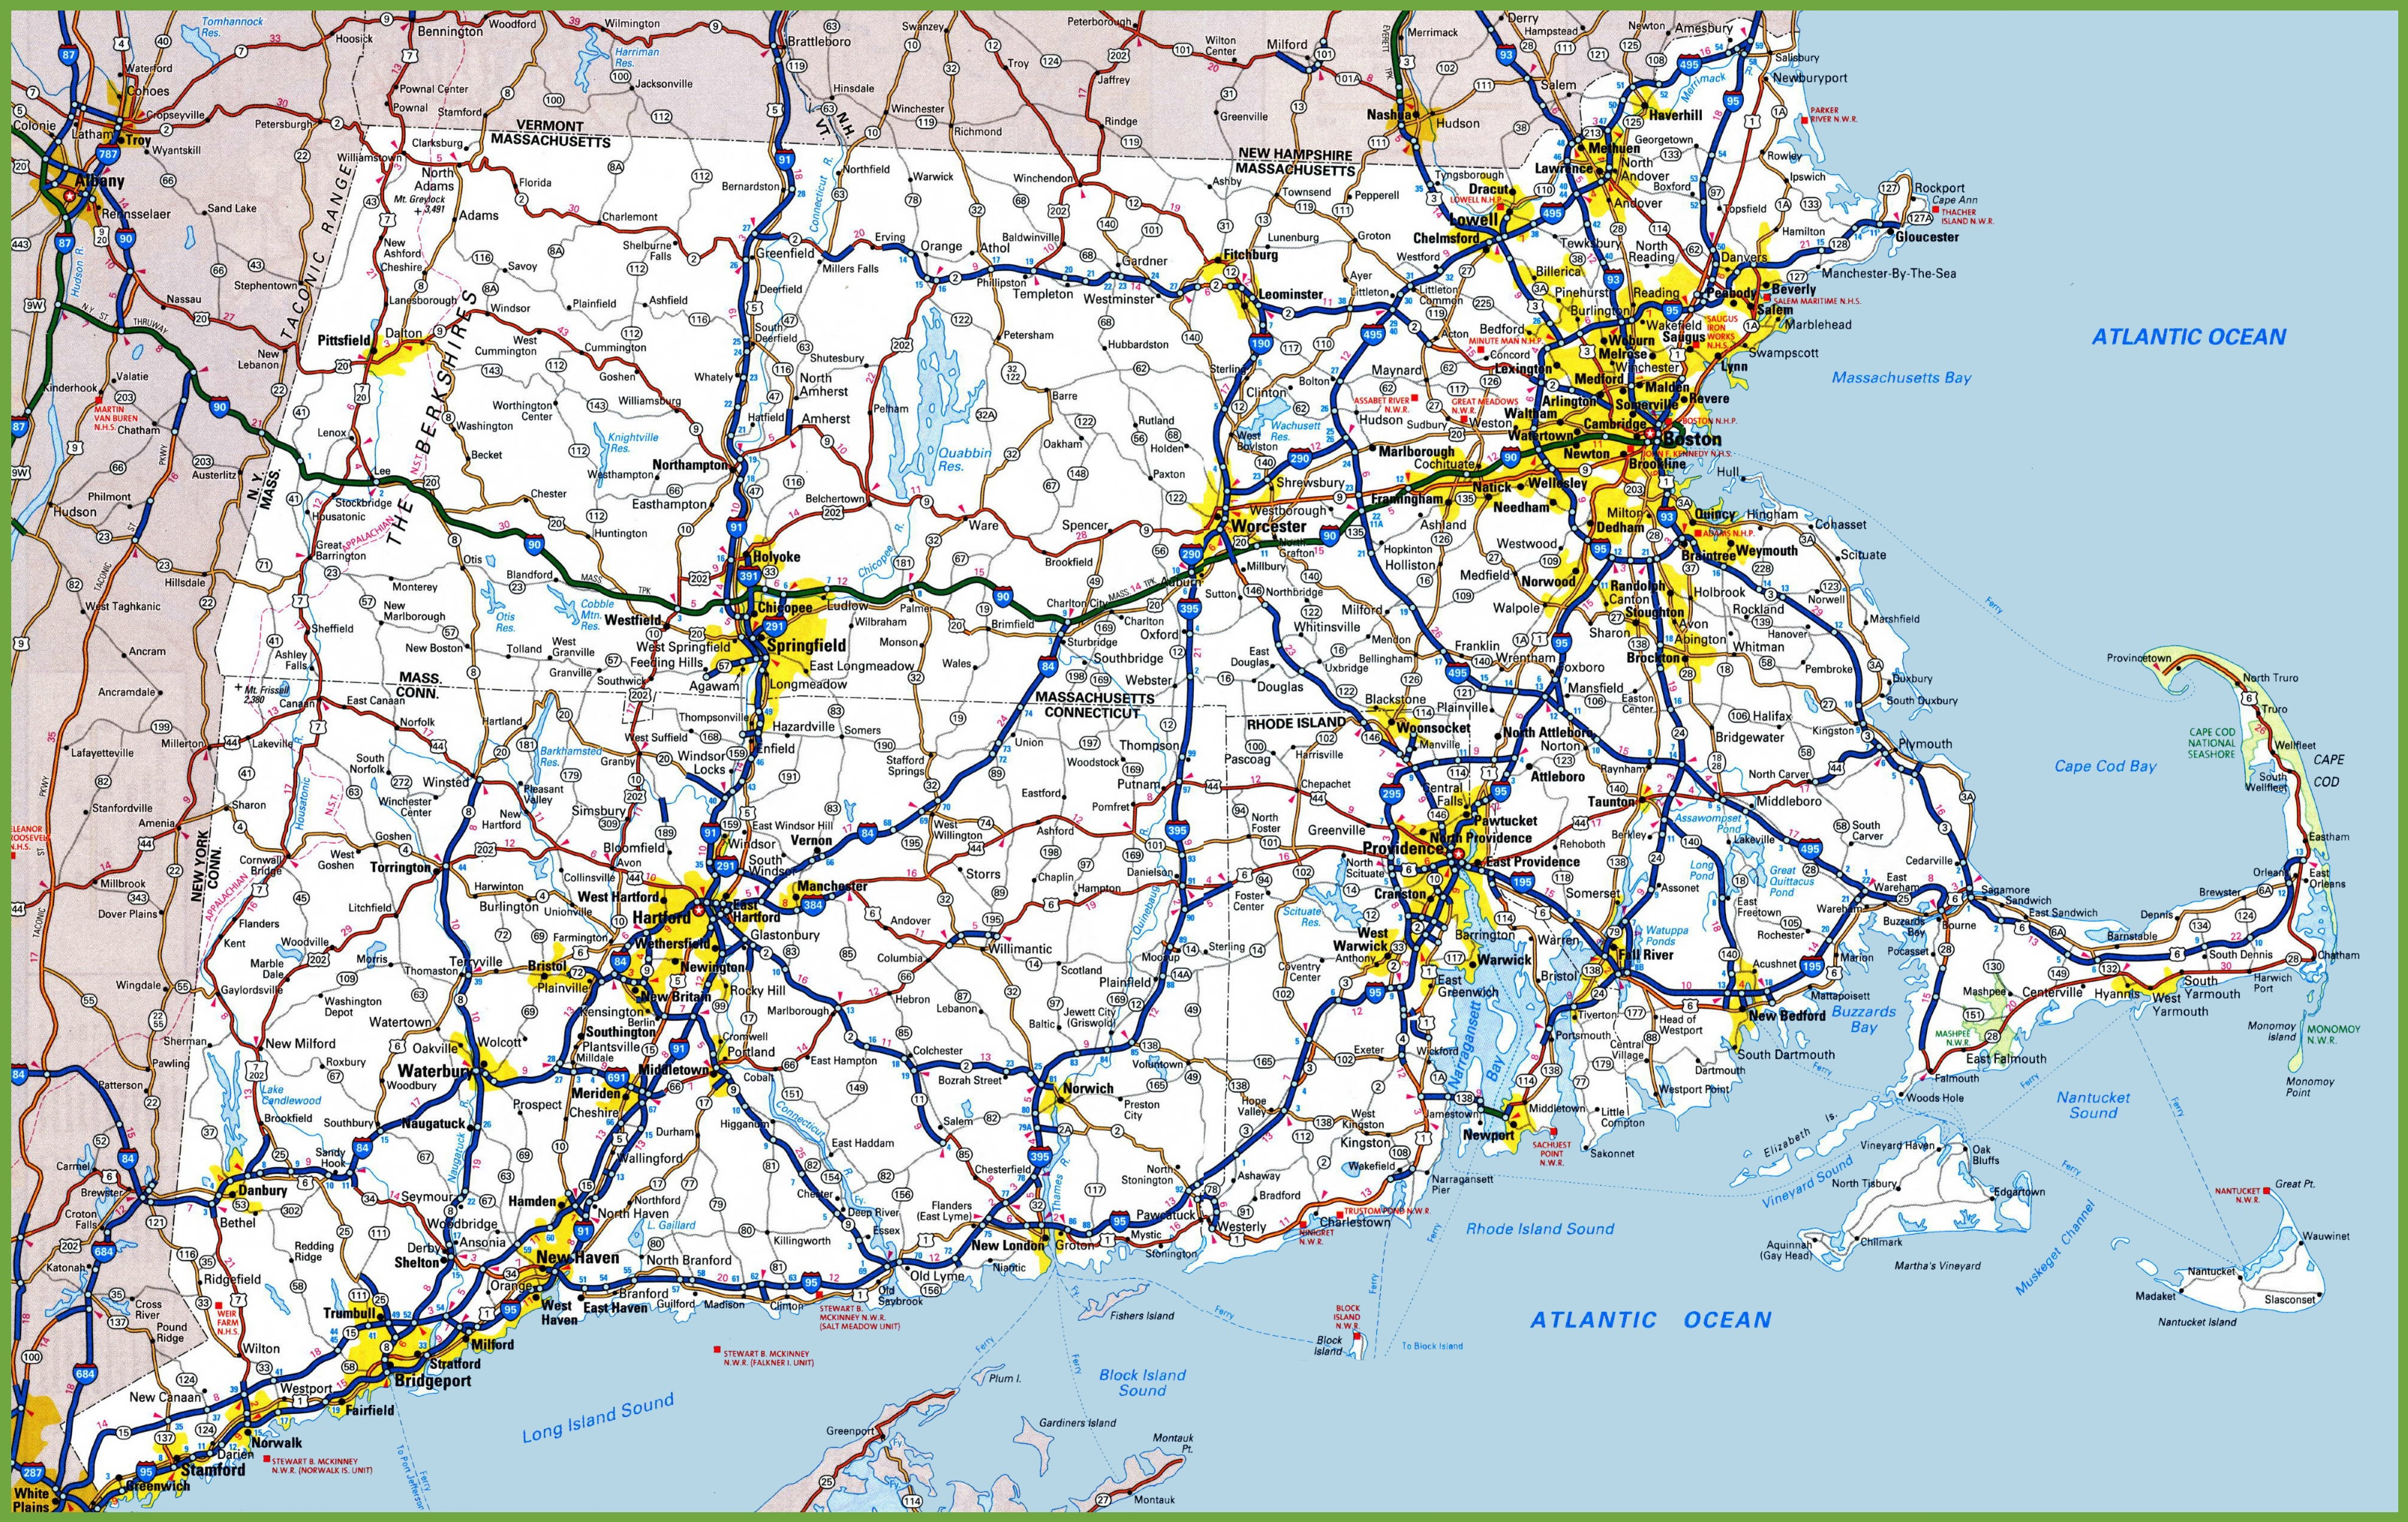 Map Of Rhode Island Massachusetts And Connecticut - Road island usa map